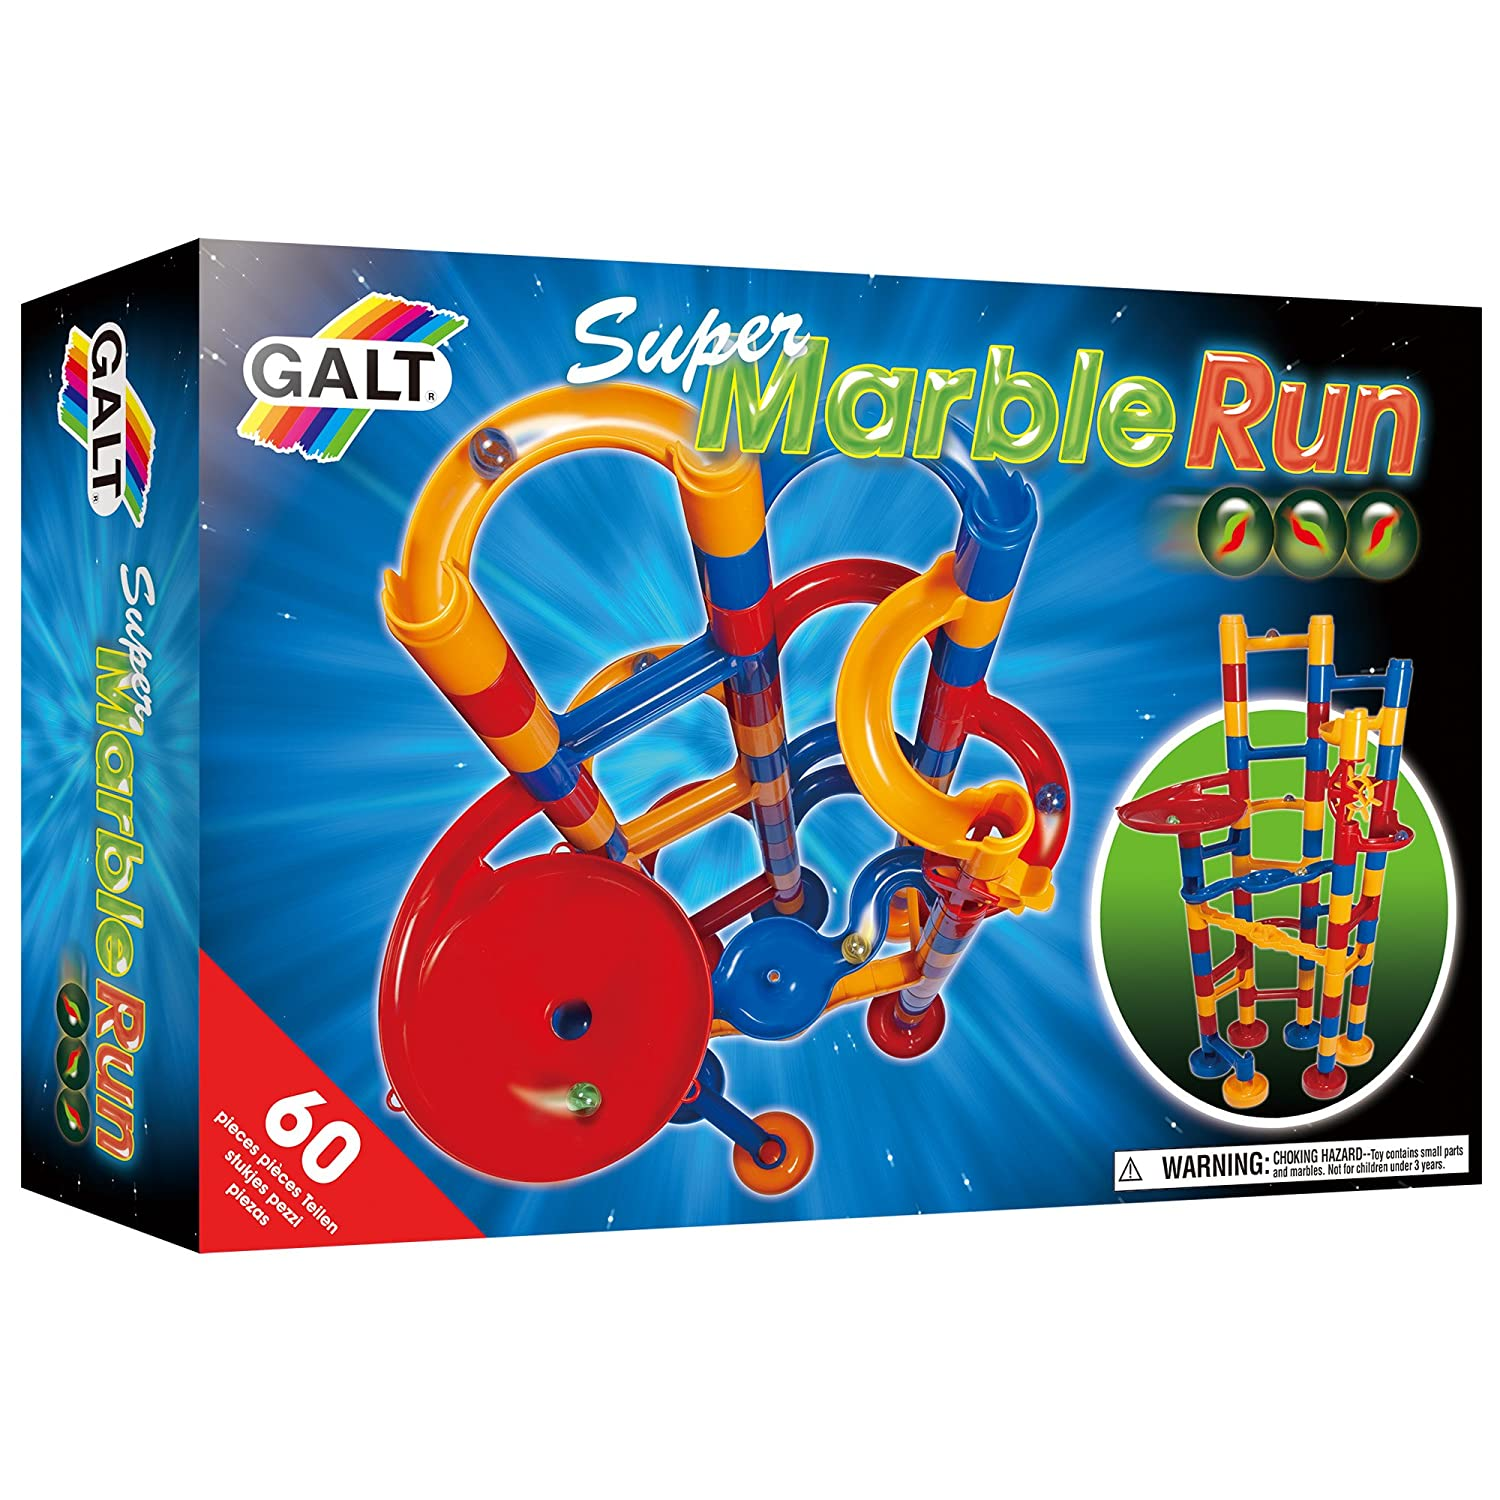 This Is A Great Learning Toy For Six Year Old Boy Whether His Birthday Or Any Special Occasion